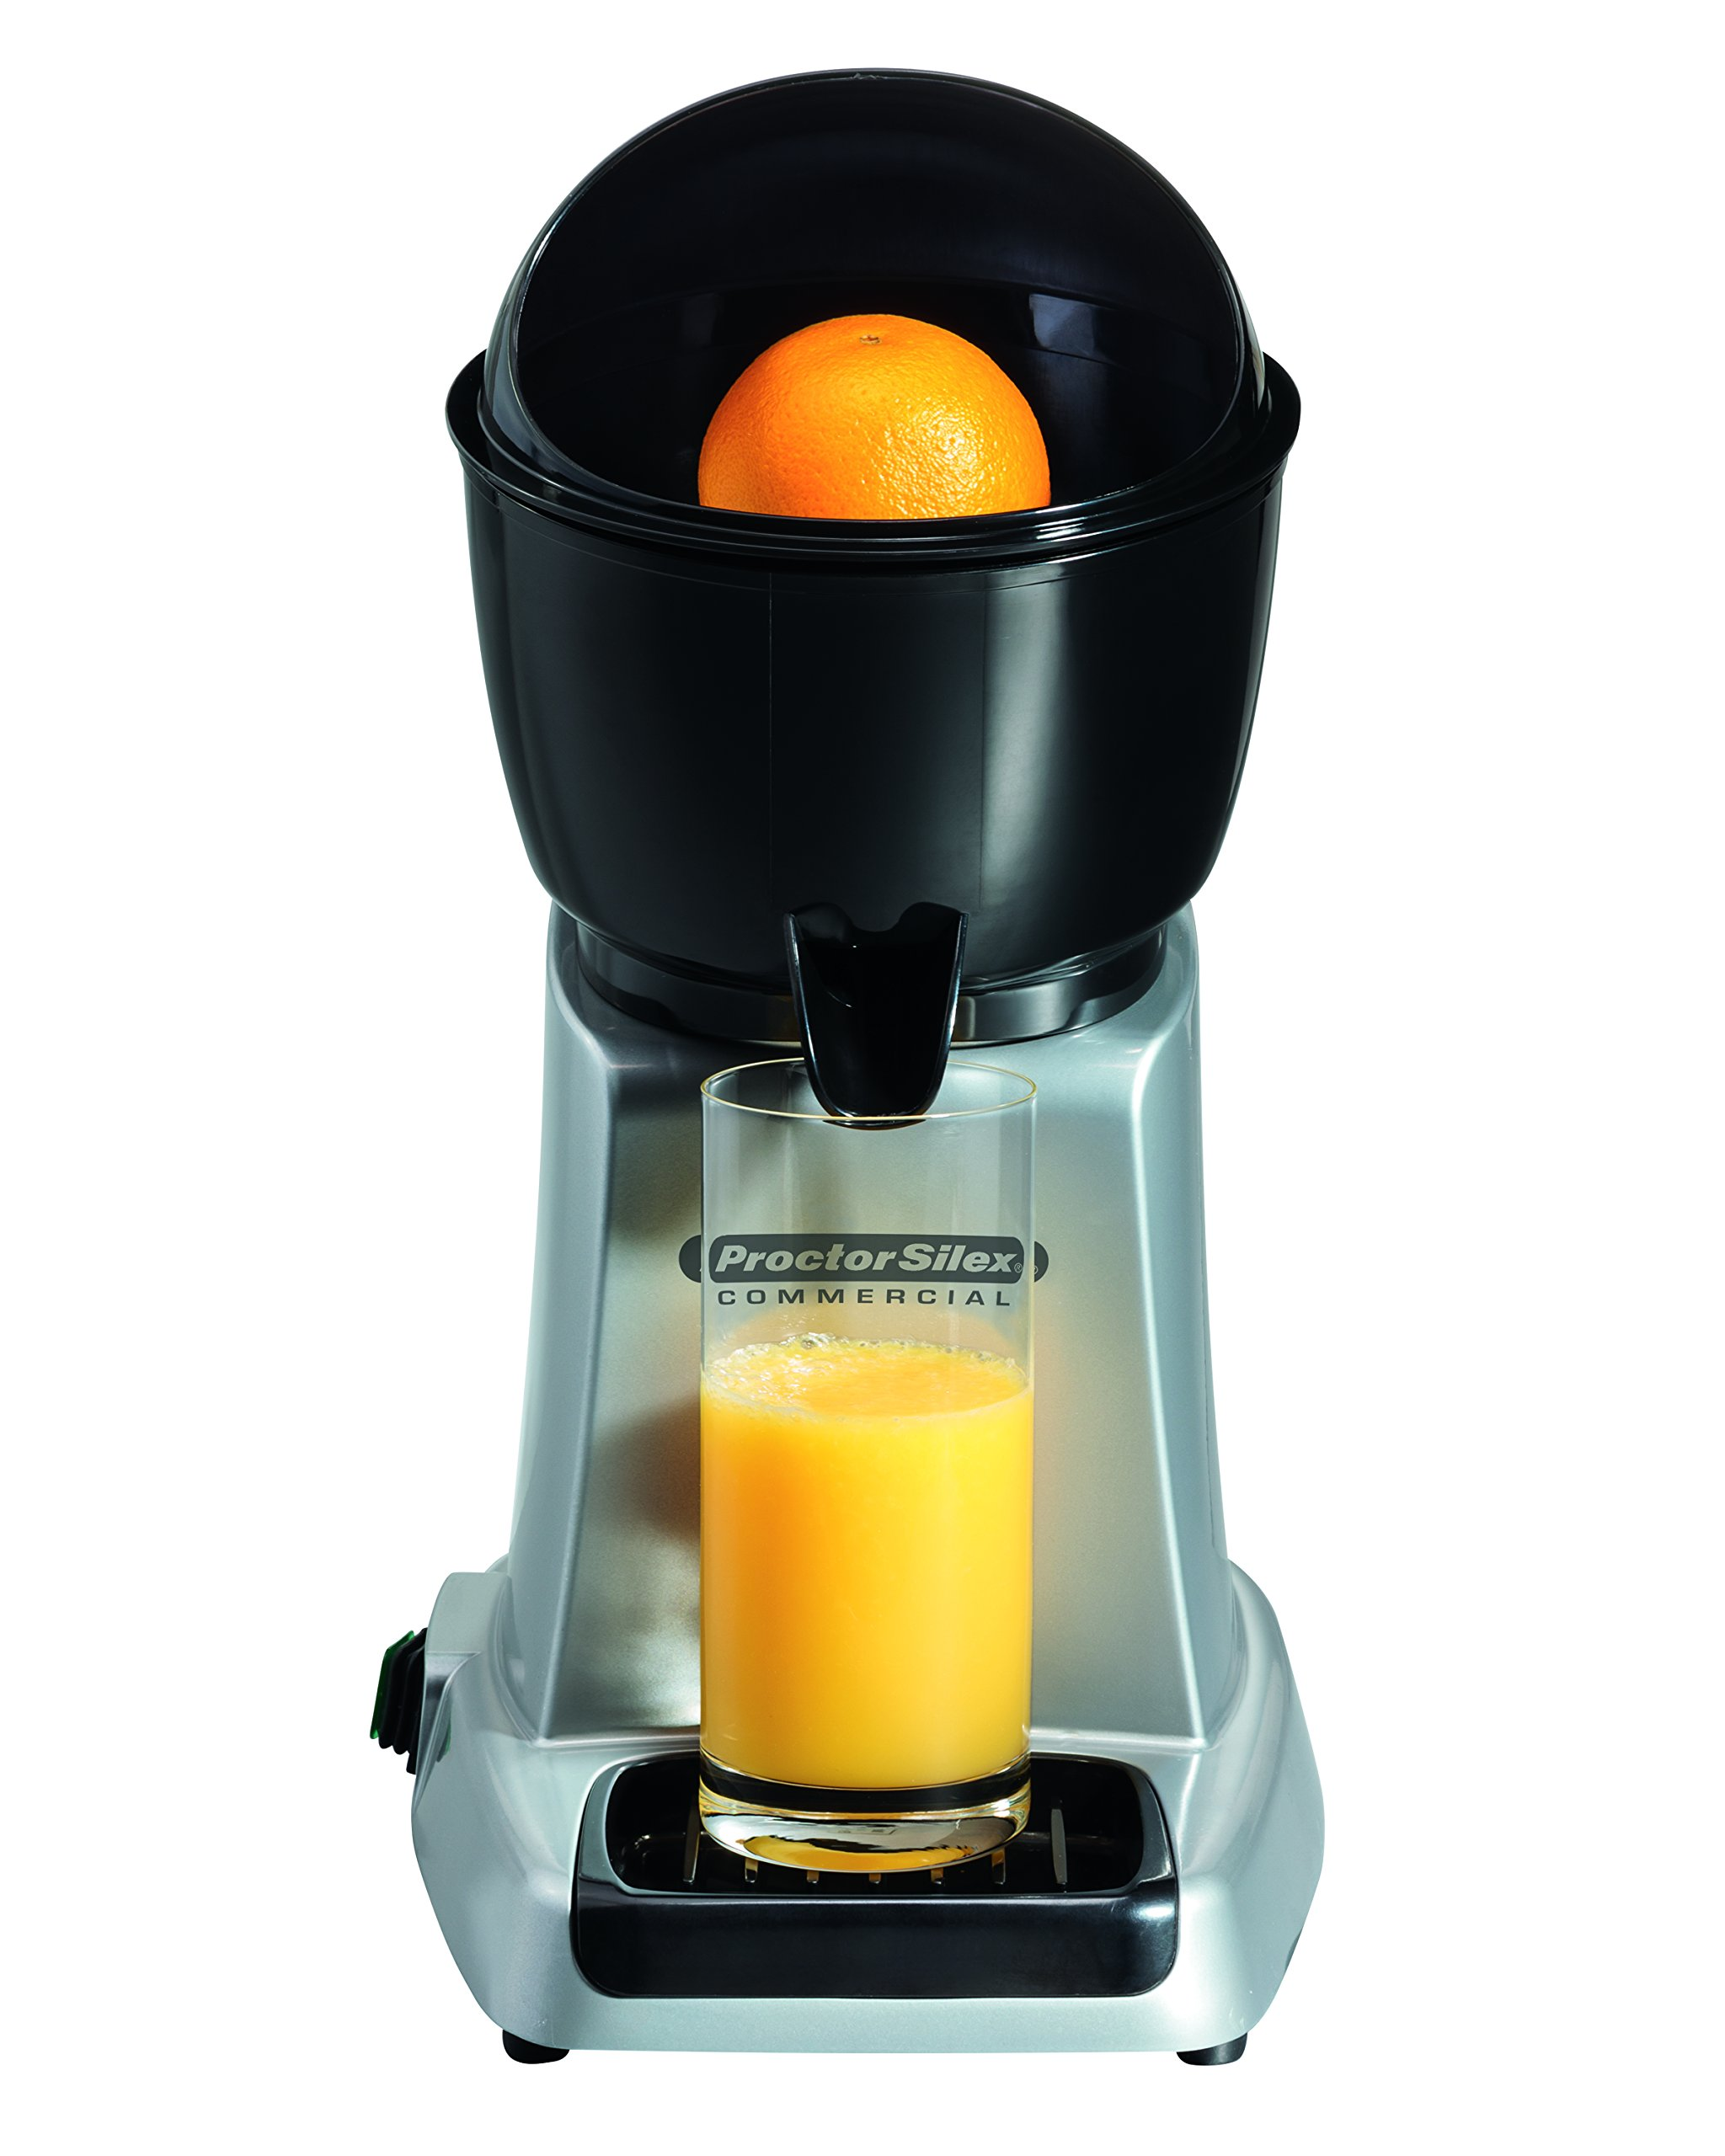 Proctor Silex Commercial 66900 Electric Citrus Juicer, 3 Reamer Sizes for Oranges, Lemons, Limes and Grapefruits, Removable Bowl, Strainer, Splashguard, Drip Tray, Black/Grey by Hamilton Beach (Image #3)